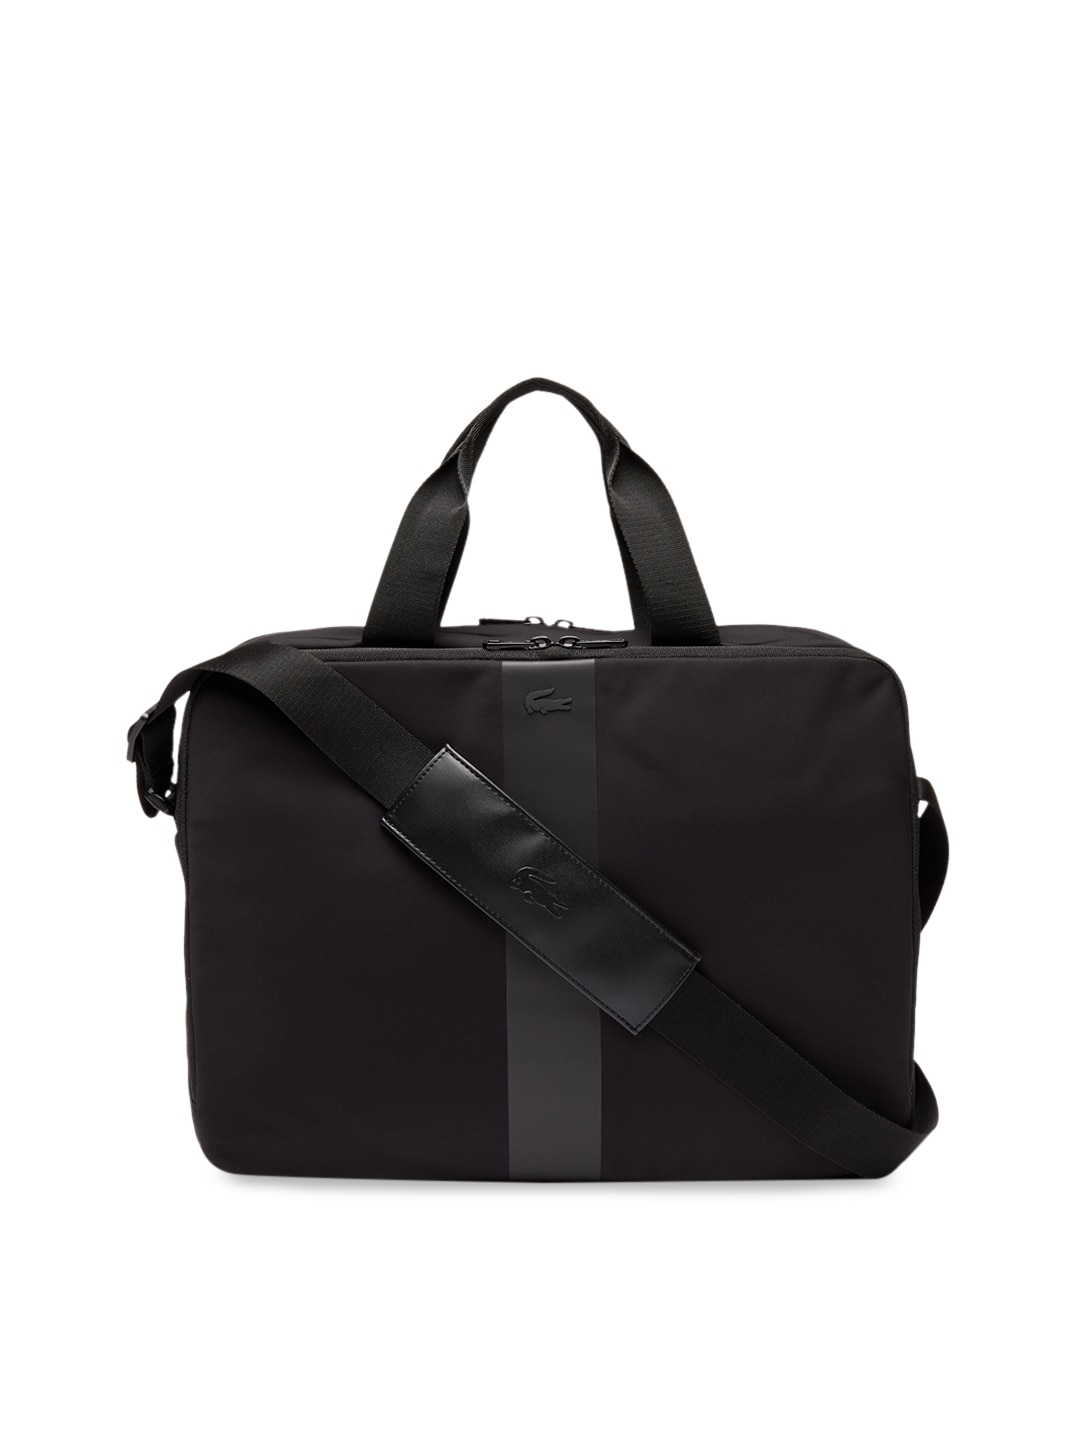 a20e35e1edec Bags Online - Buy Bags for men and Women Online in India